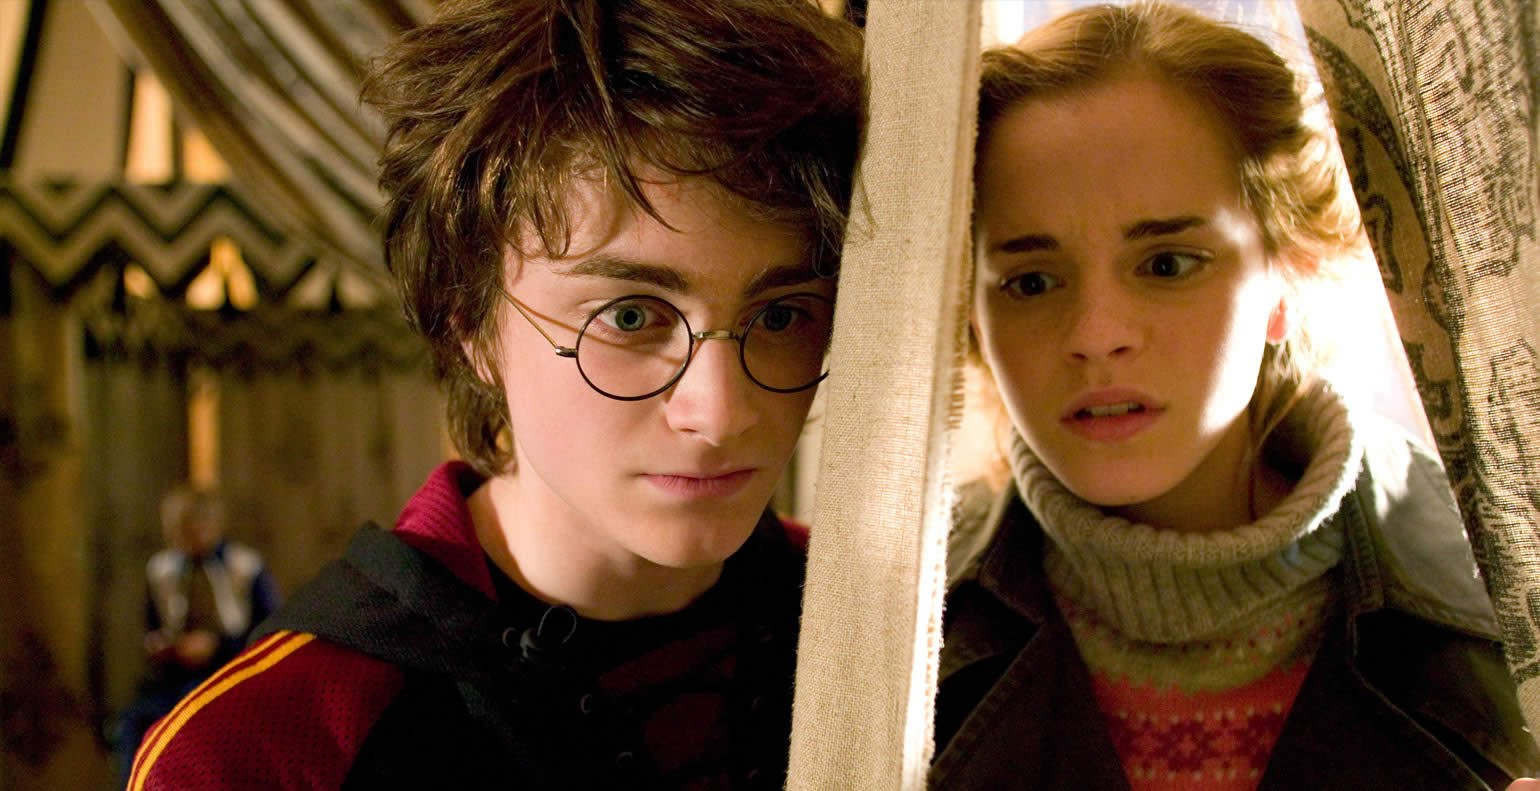 We're freaking out over this Harry Potter theory that TOTALLY changes the Triwizard Tournament